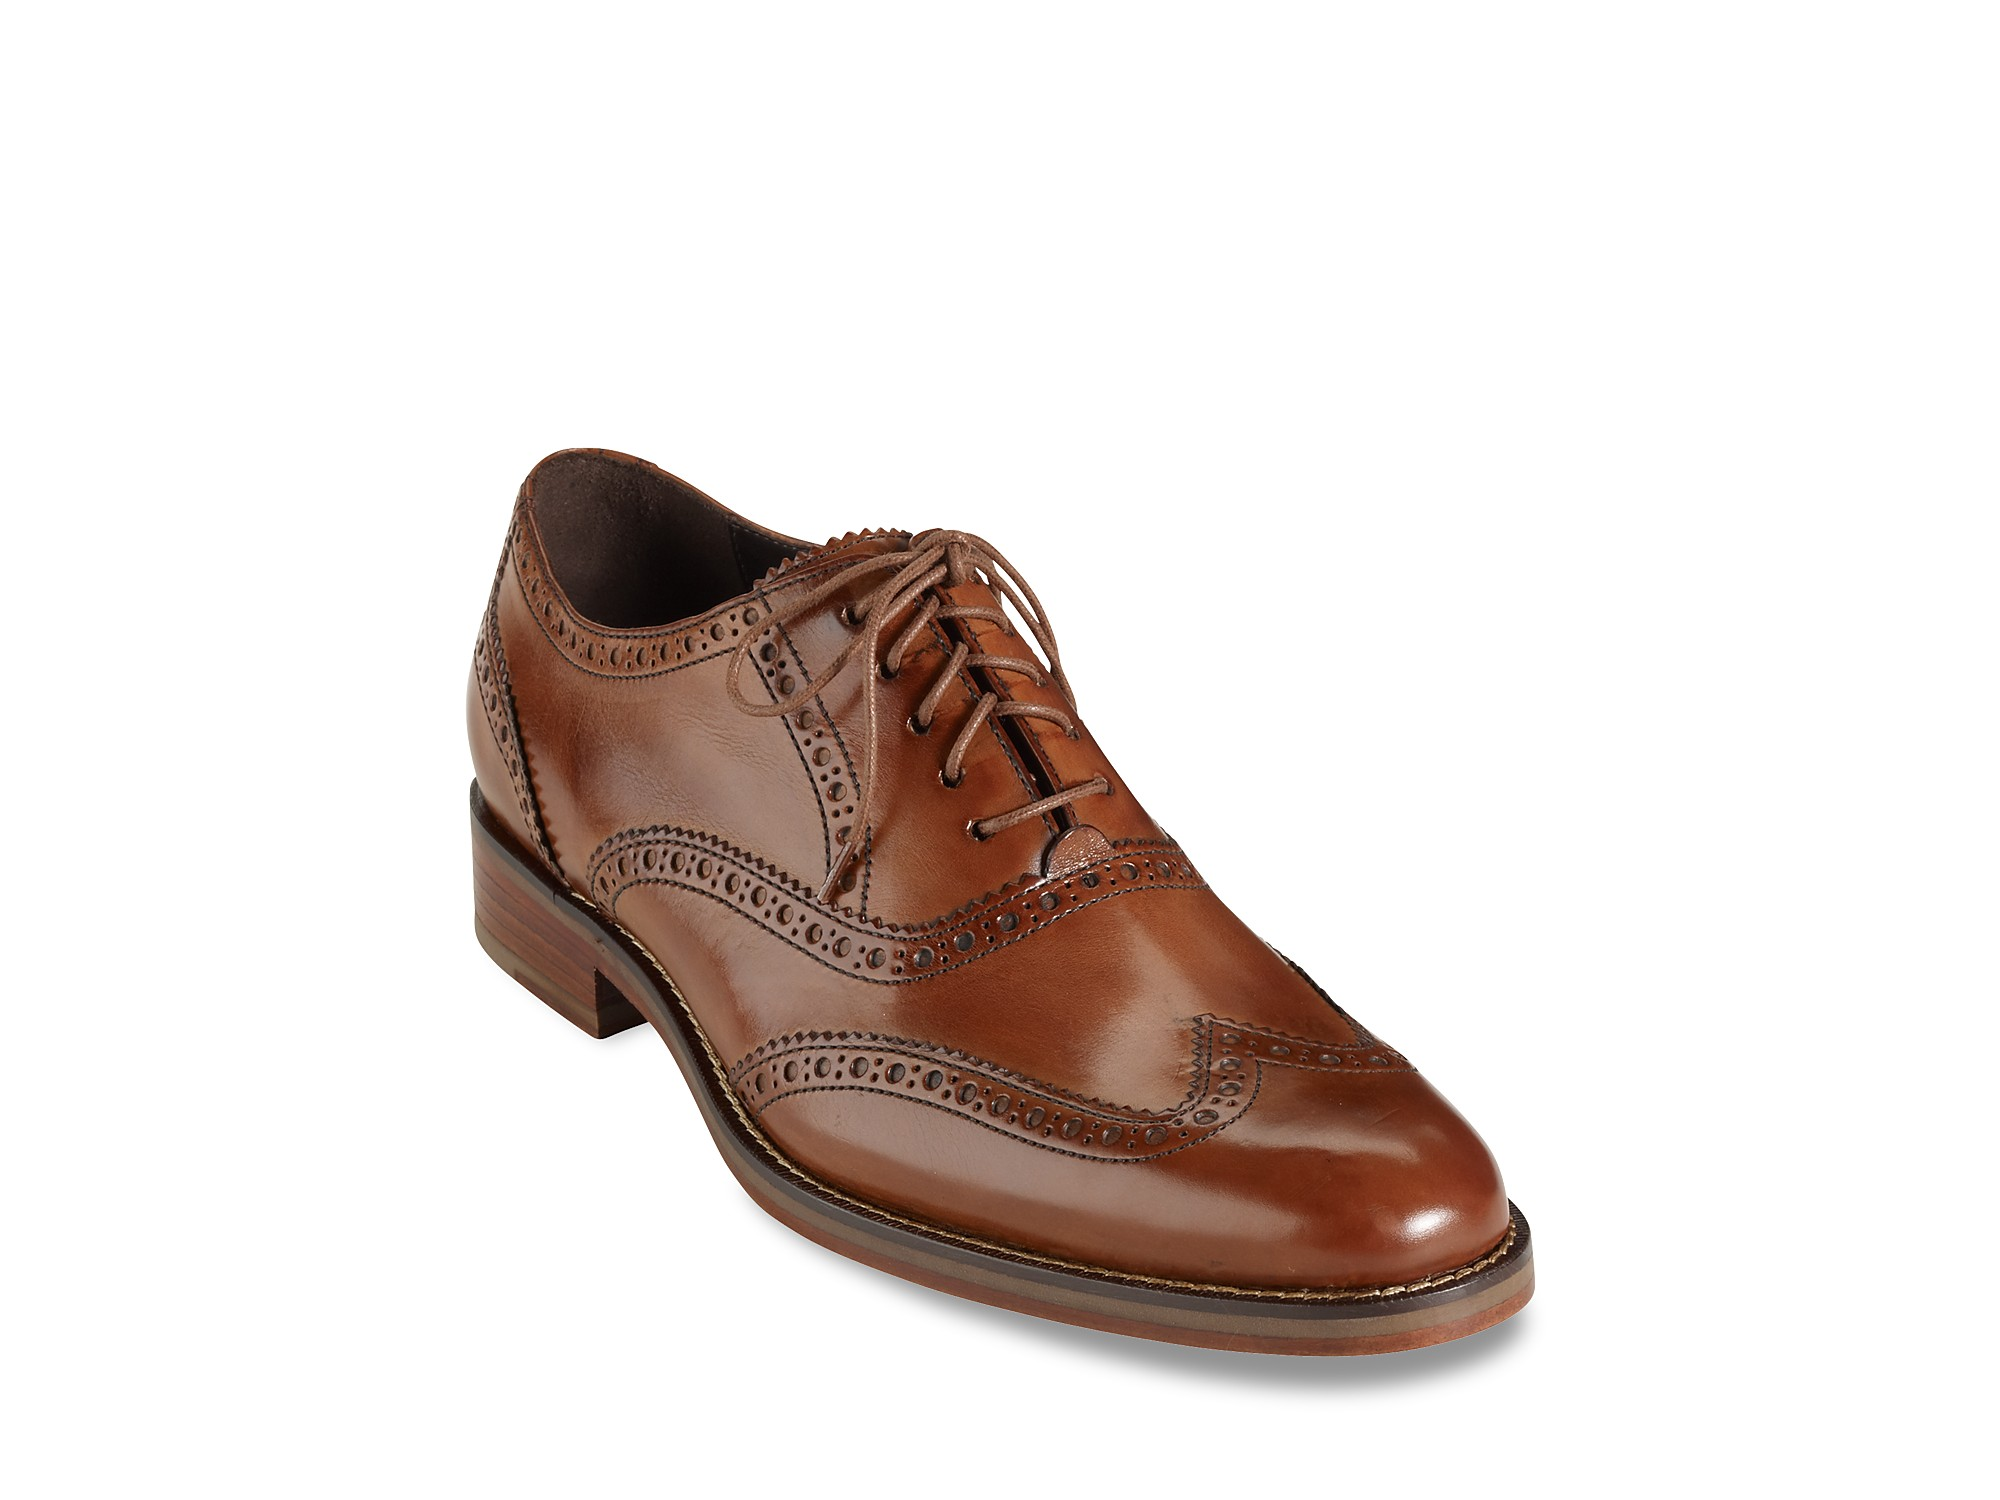 Cole Haan Mens Shoes Air Madison Wingtip Oxfords